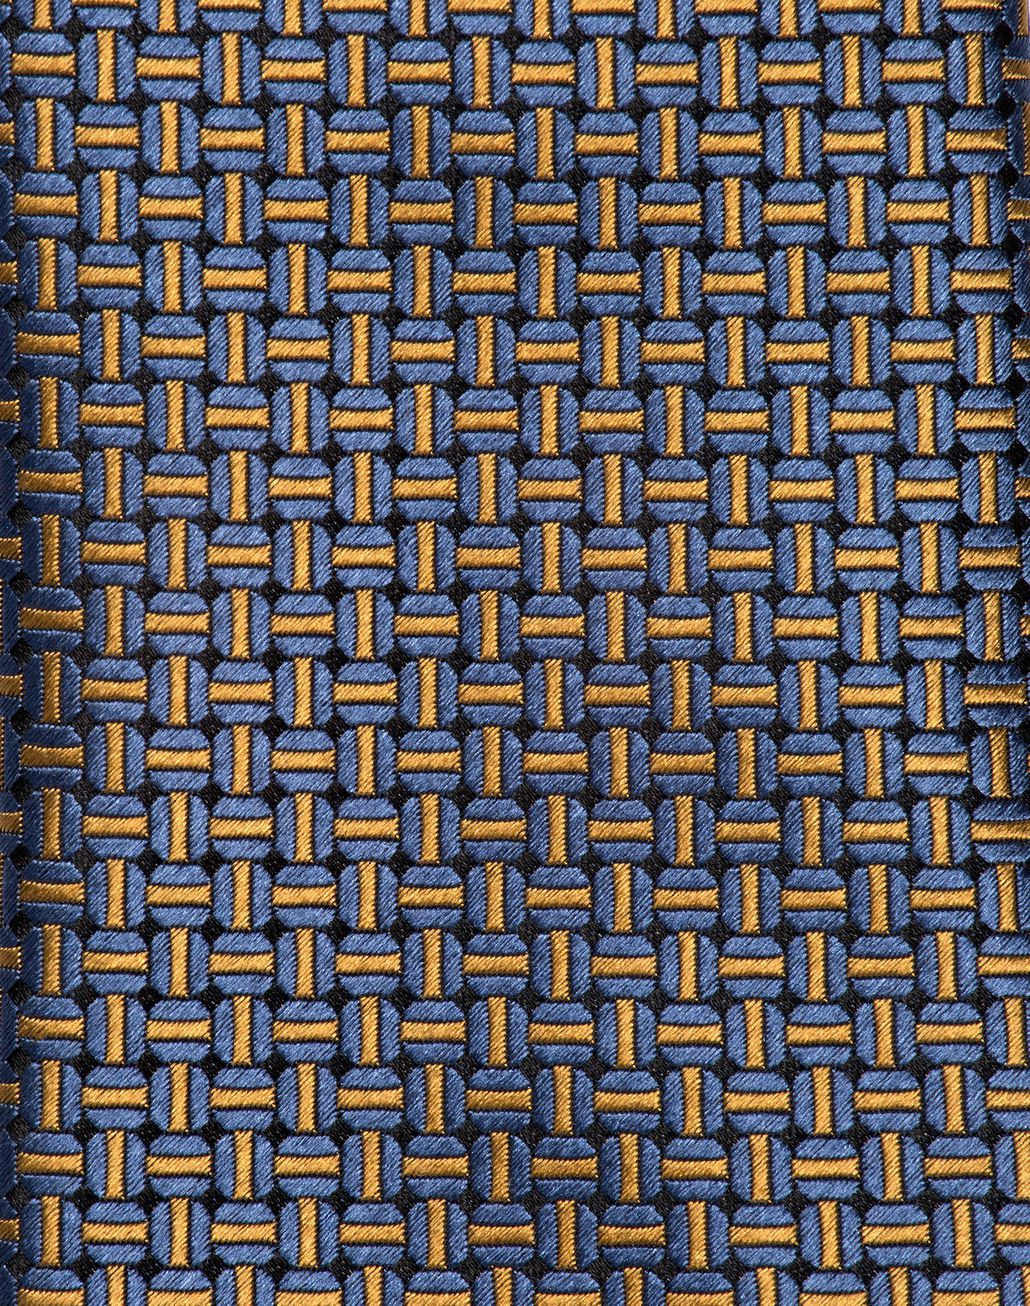 BRIONI Navy Blue and Mustard Designed Tie Tie U d